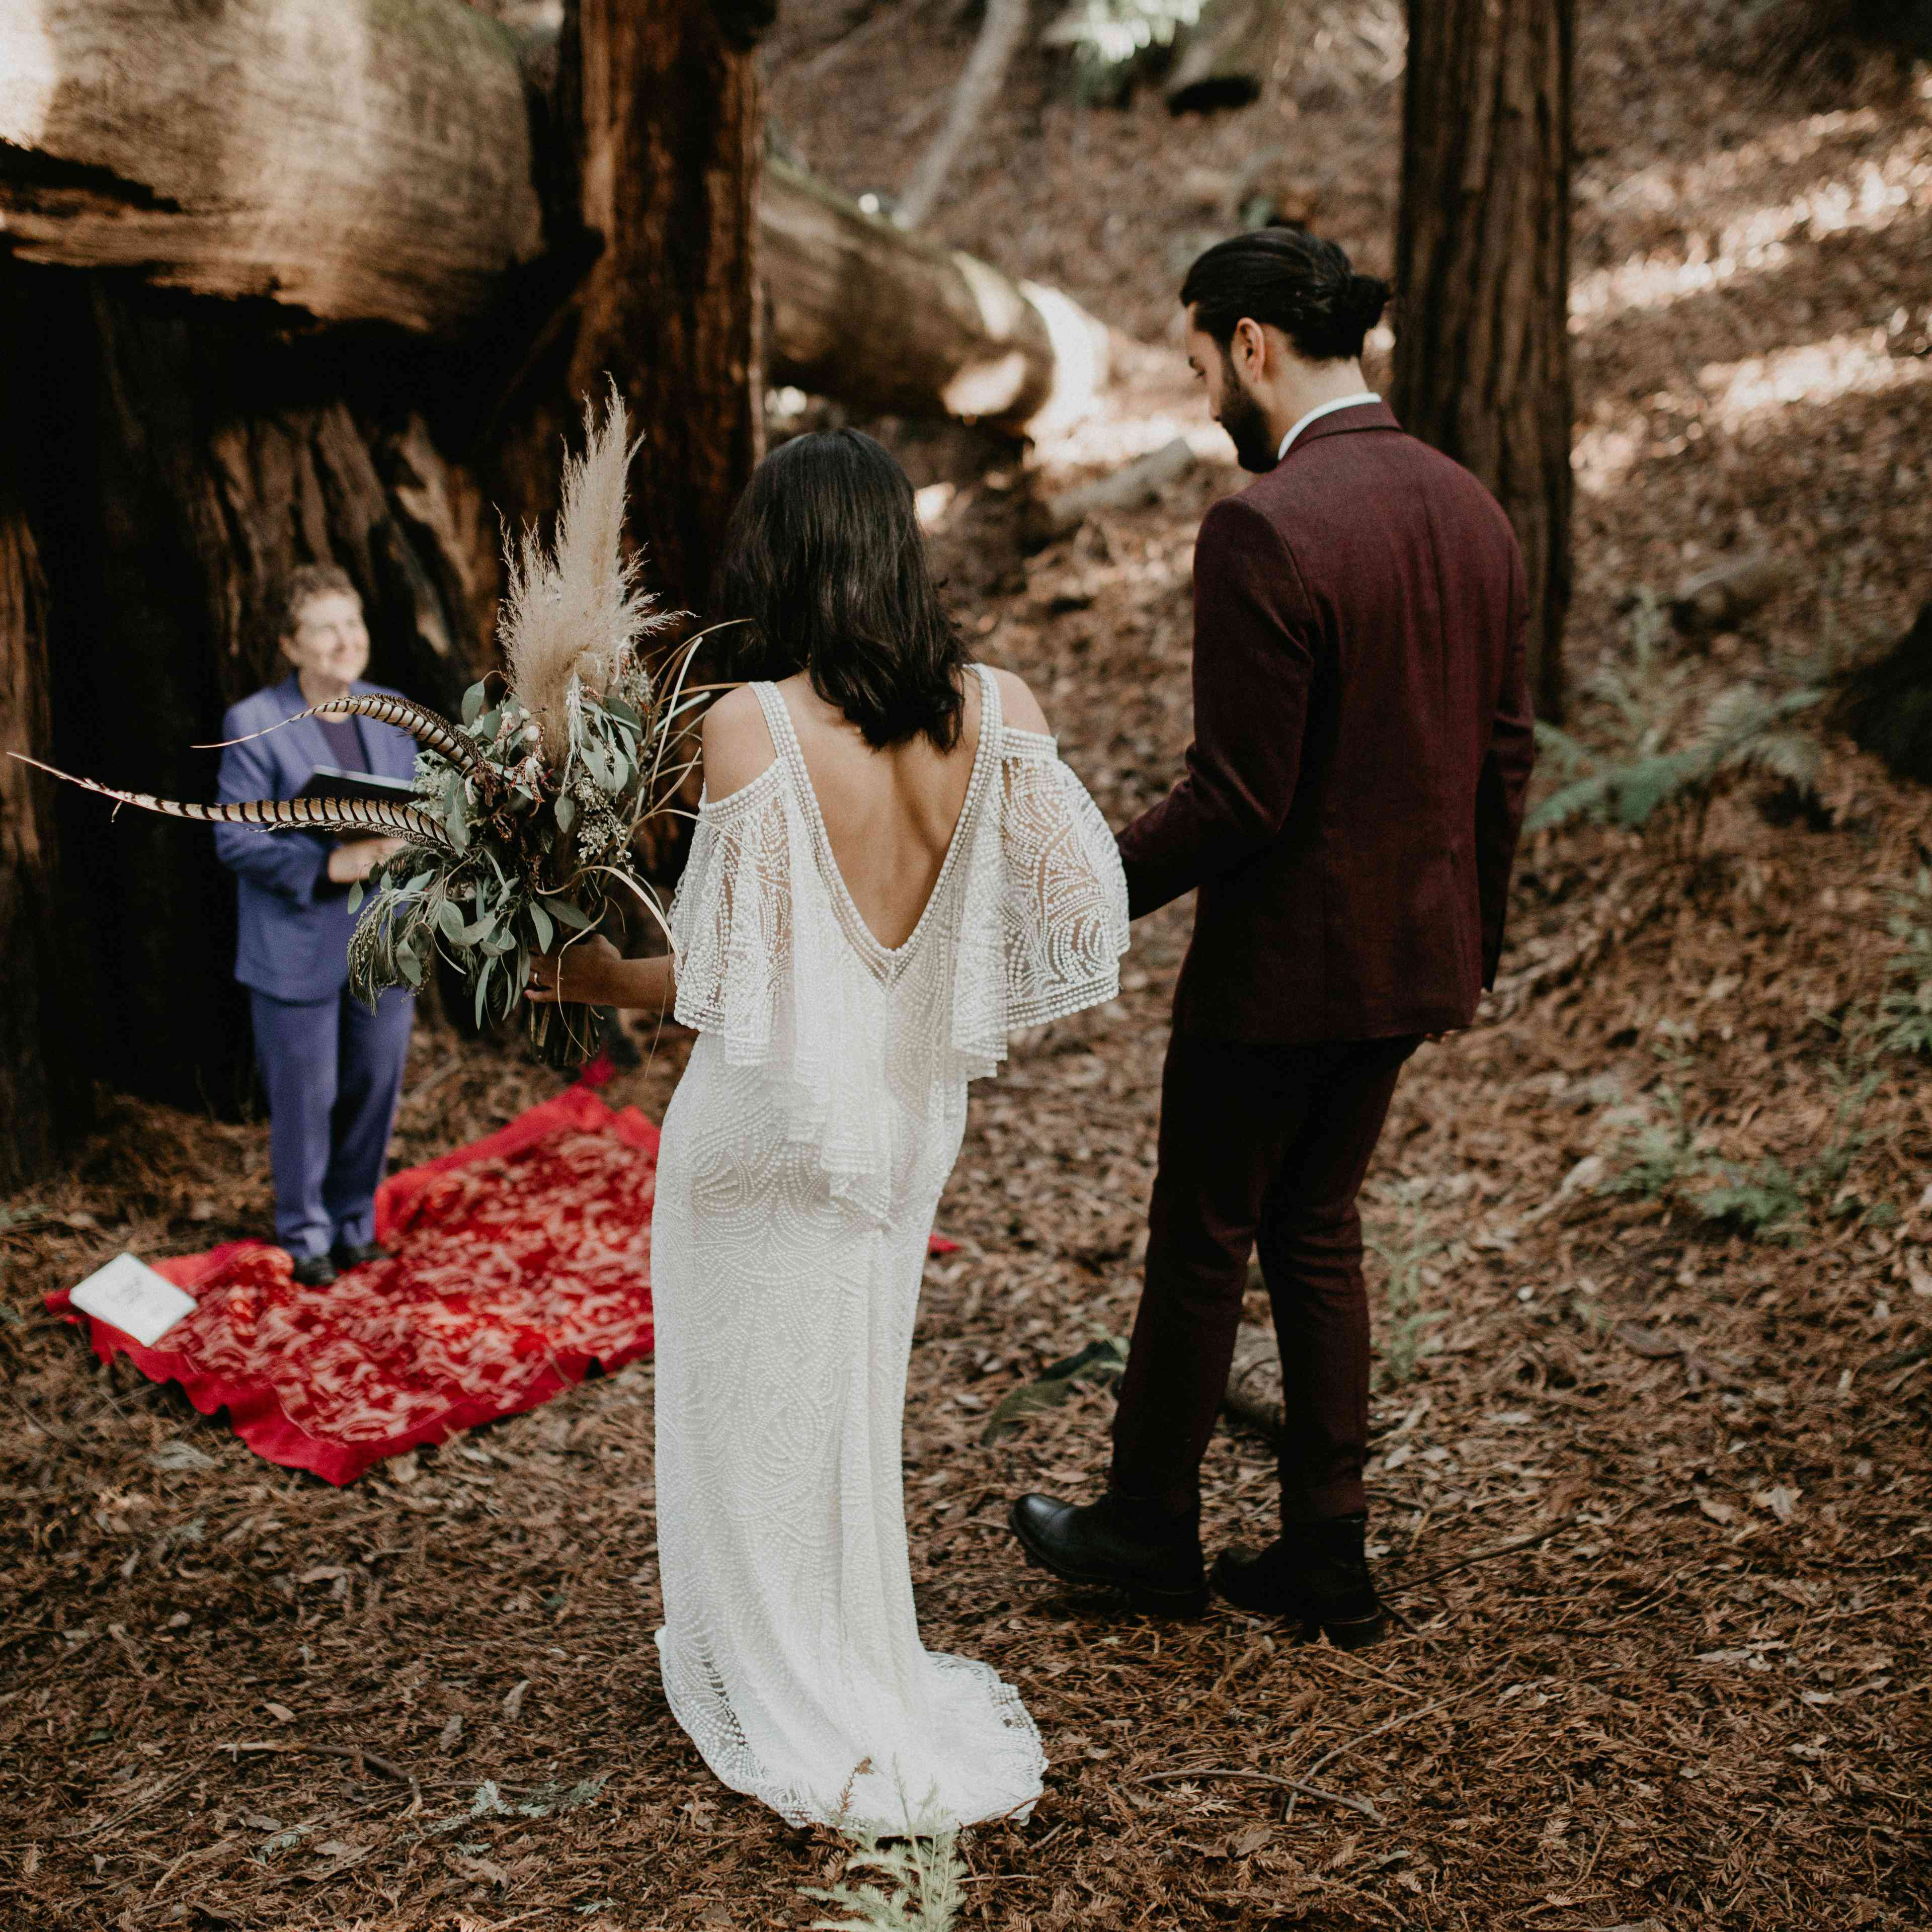 7 Sweet Wedding Traditions To Include In Your Elopement